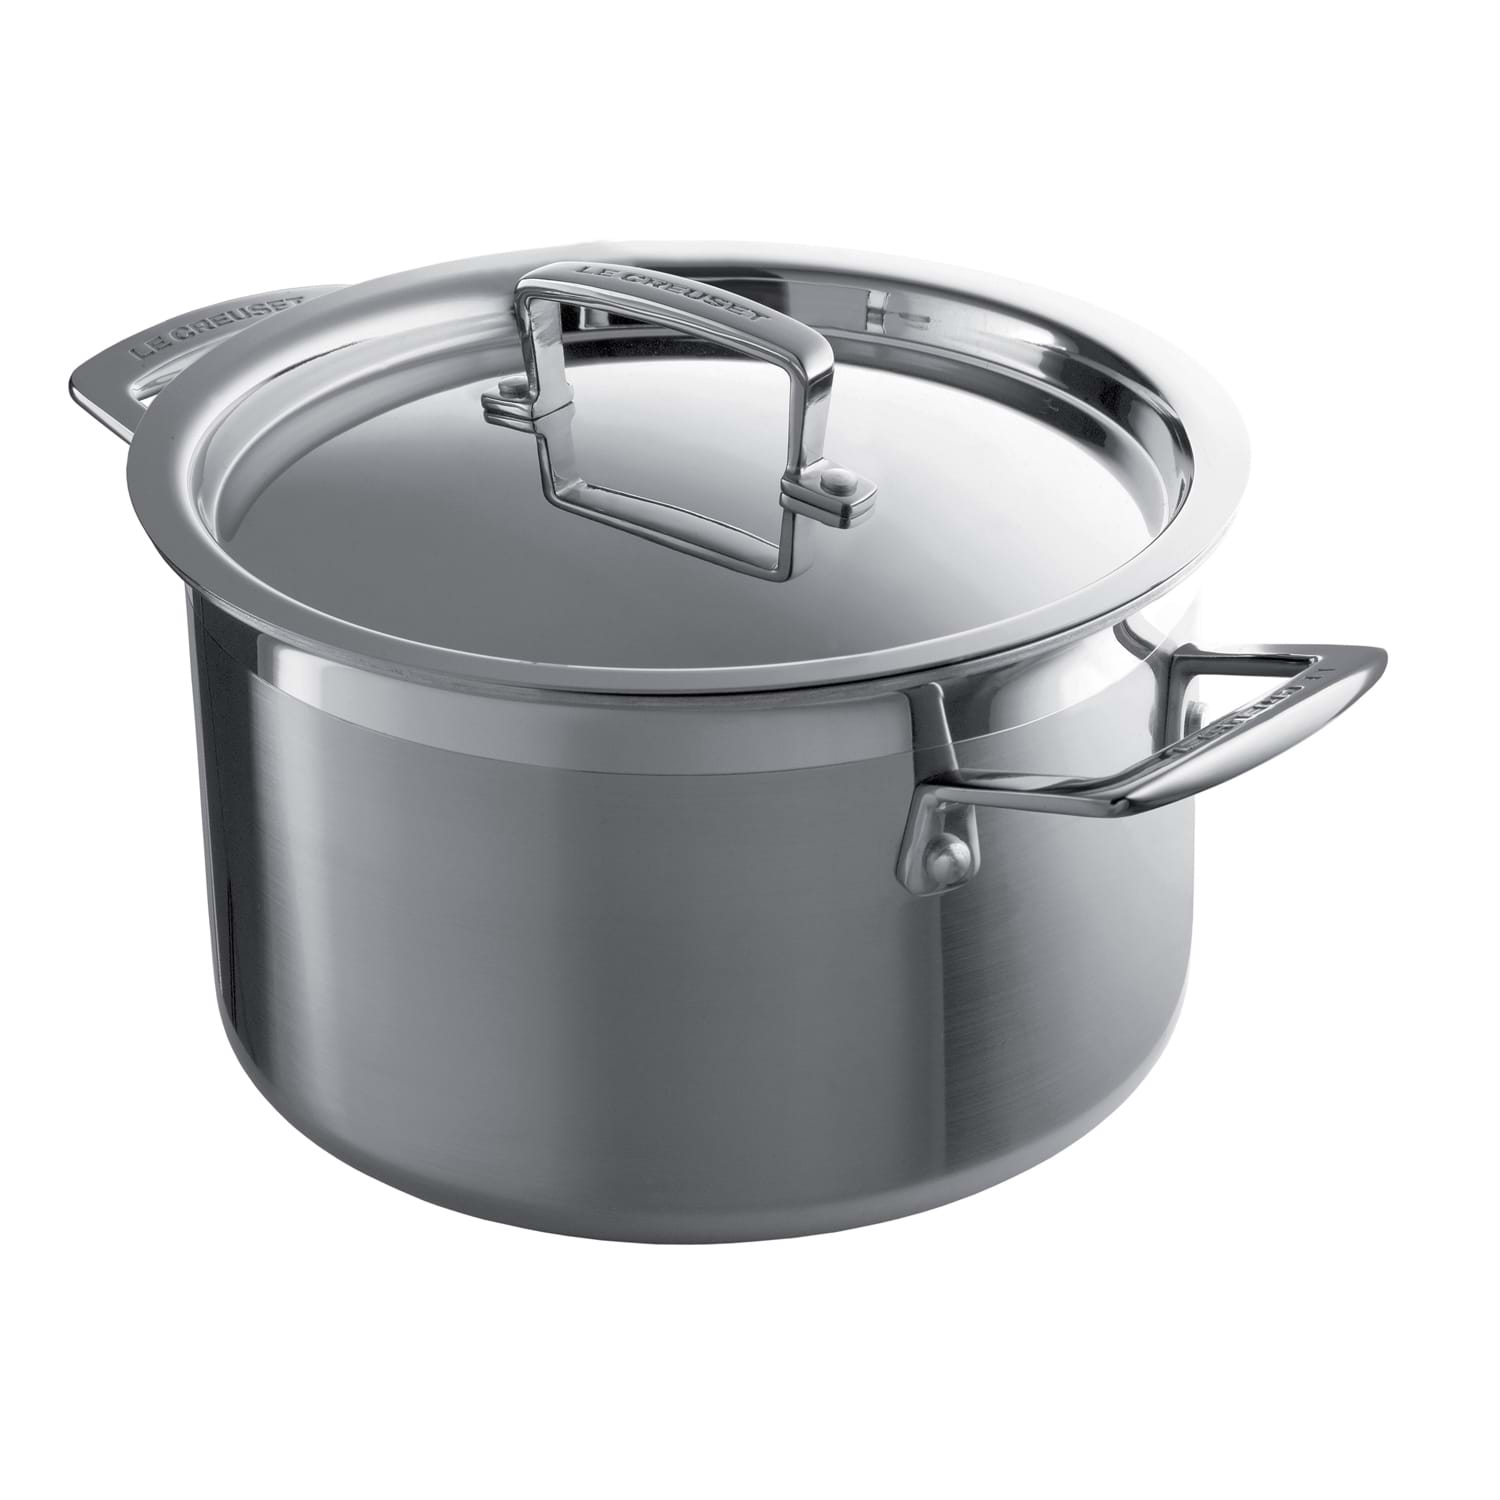 Image of Le Creuset 3-Ply Stainless Steel Deep Casserole, 24cm